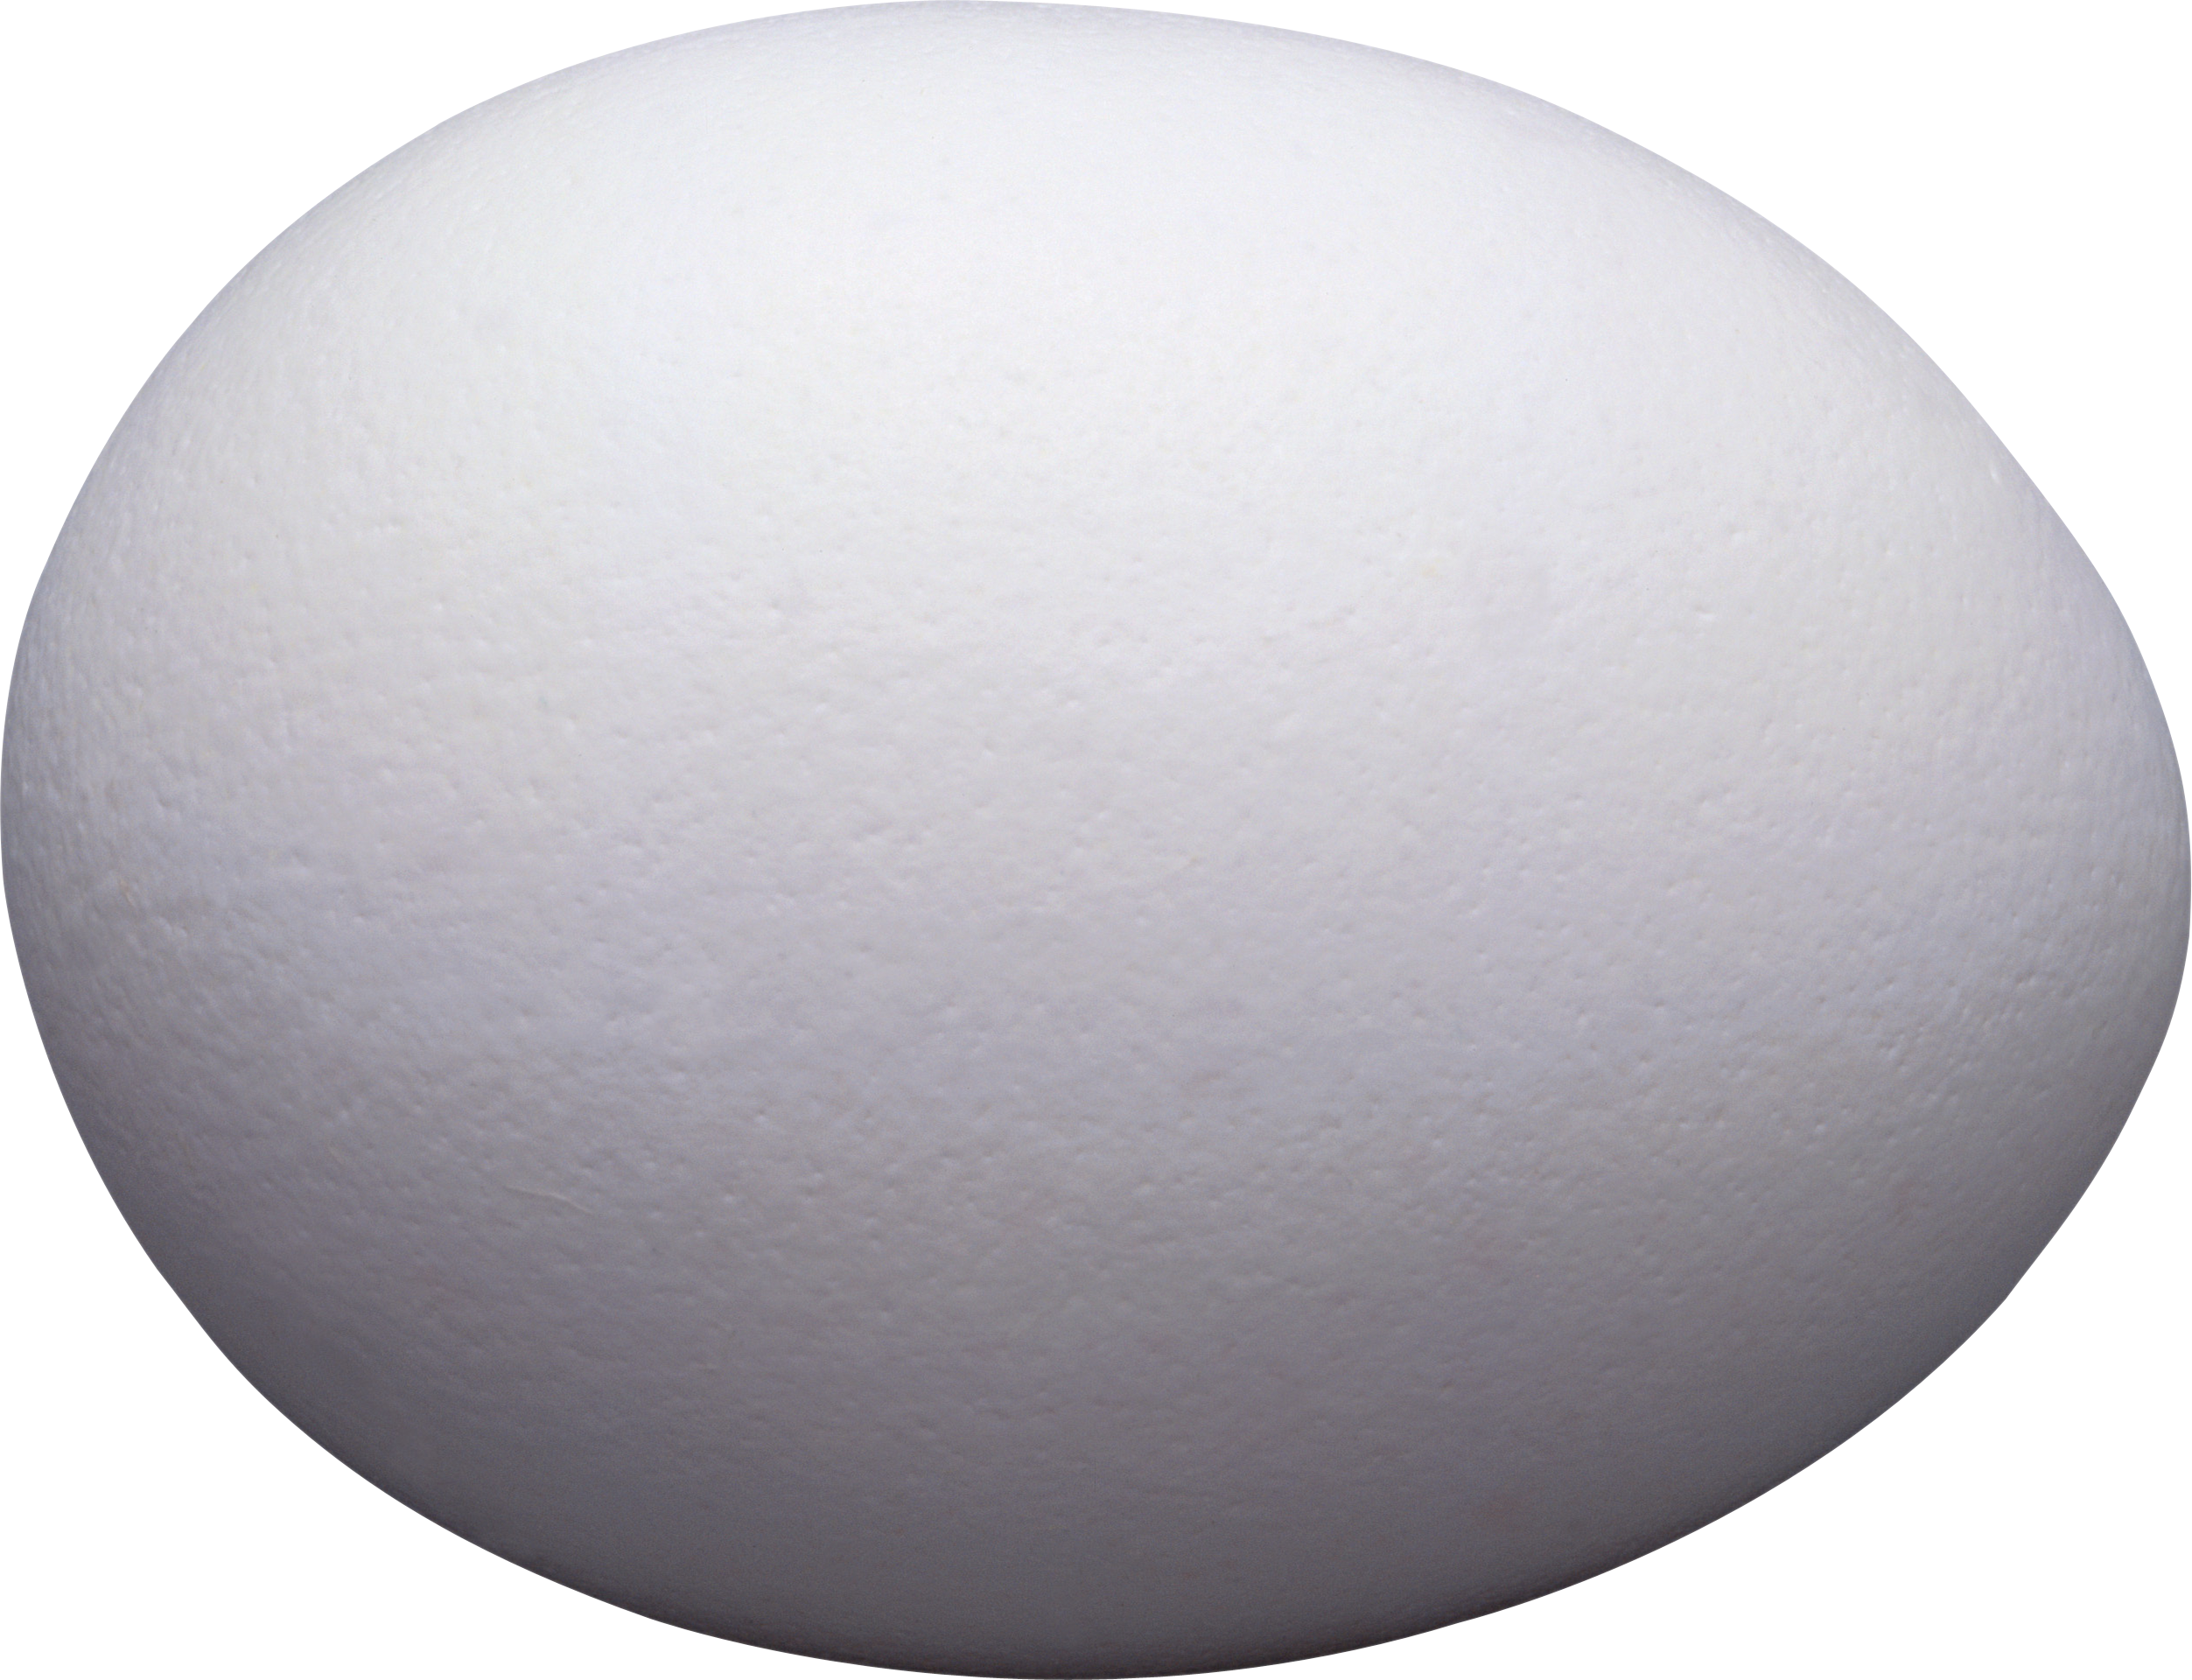 One White Egg PNG Image.